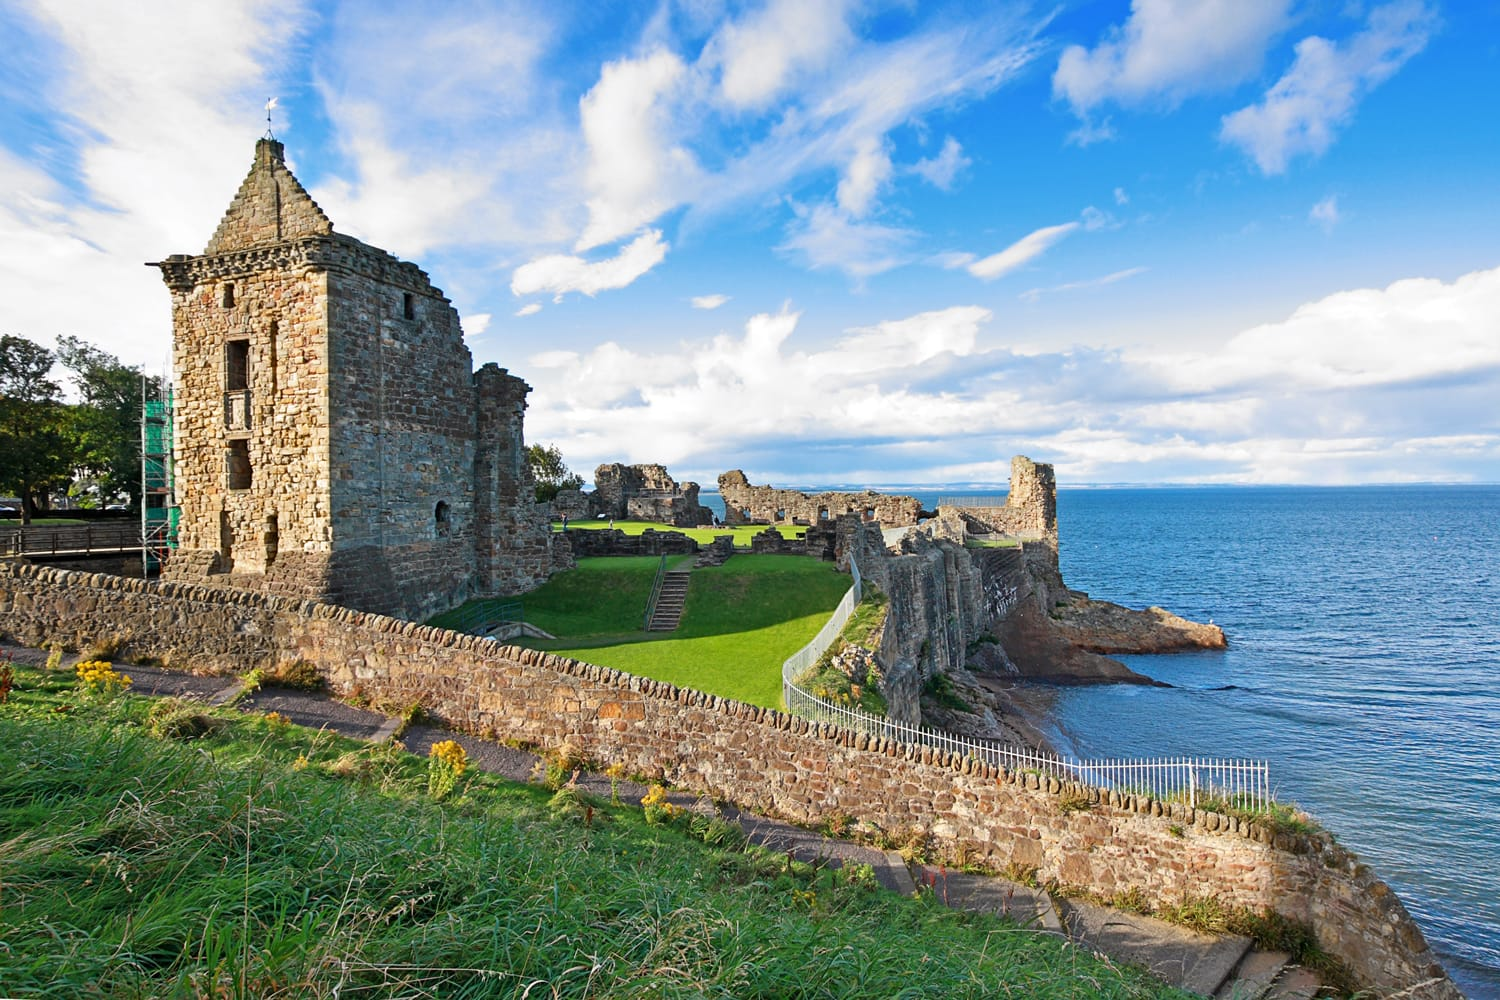 Ruins of St Andrews Castle, Fife, Scotland, United Kingdom